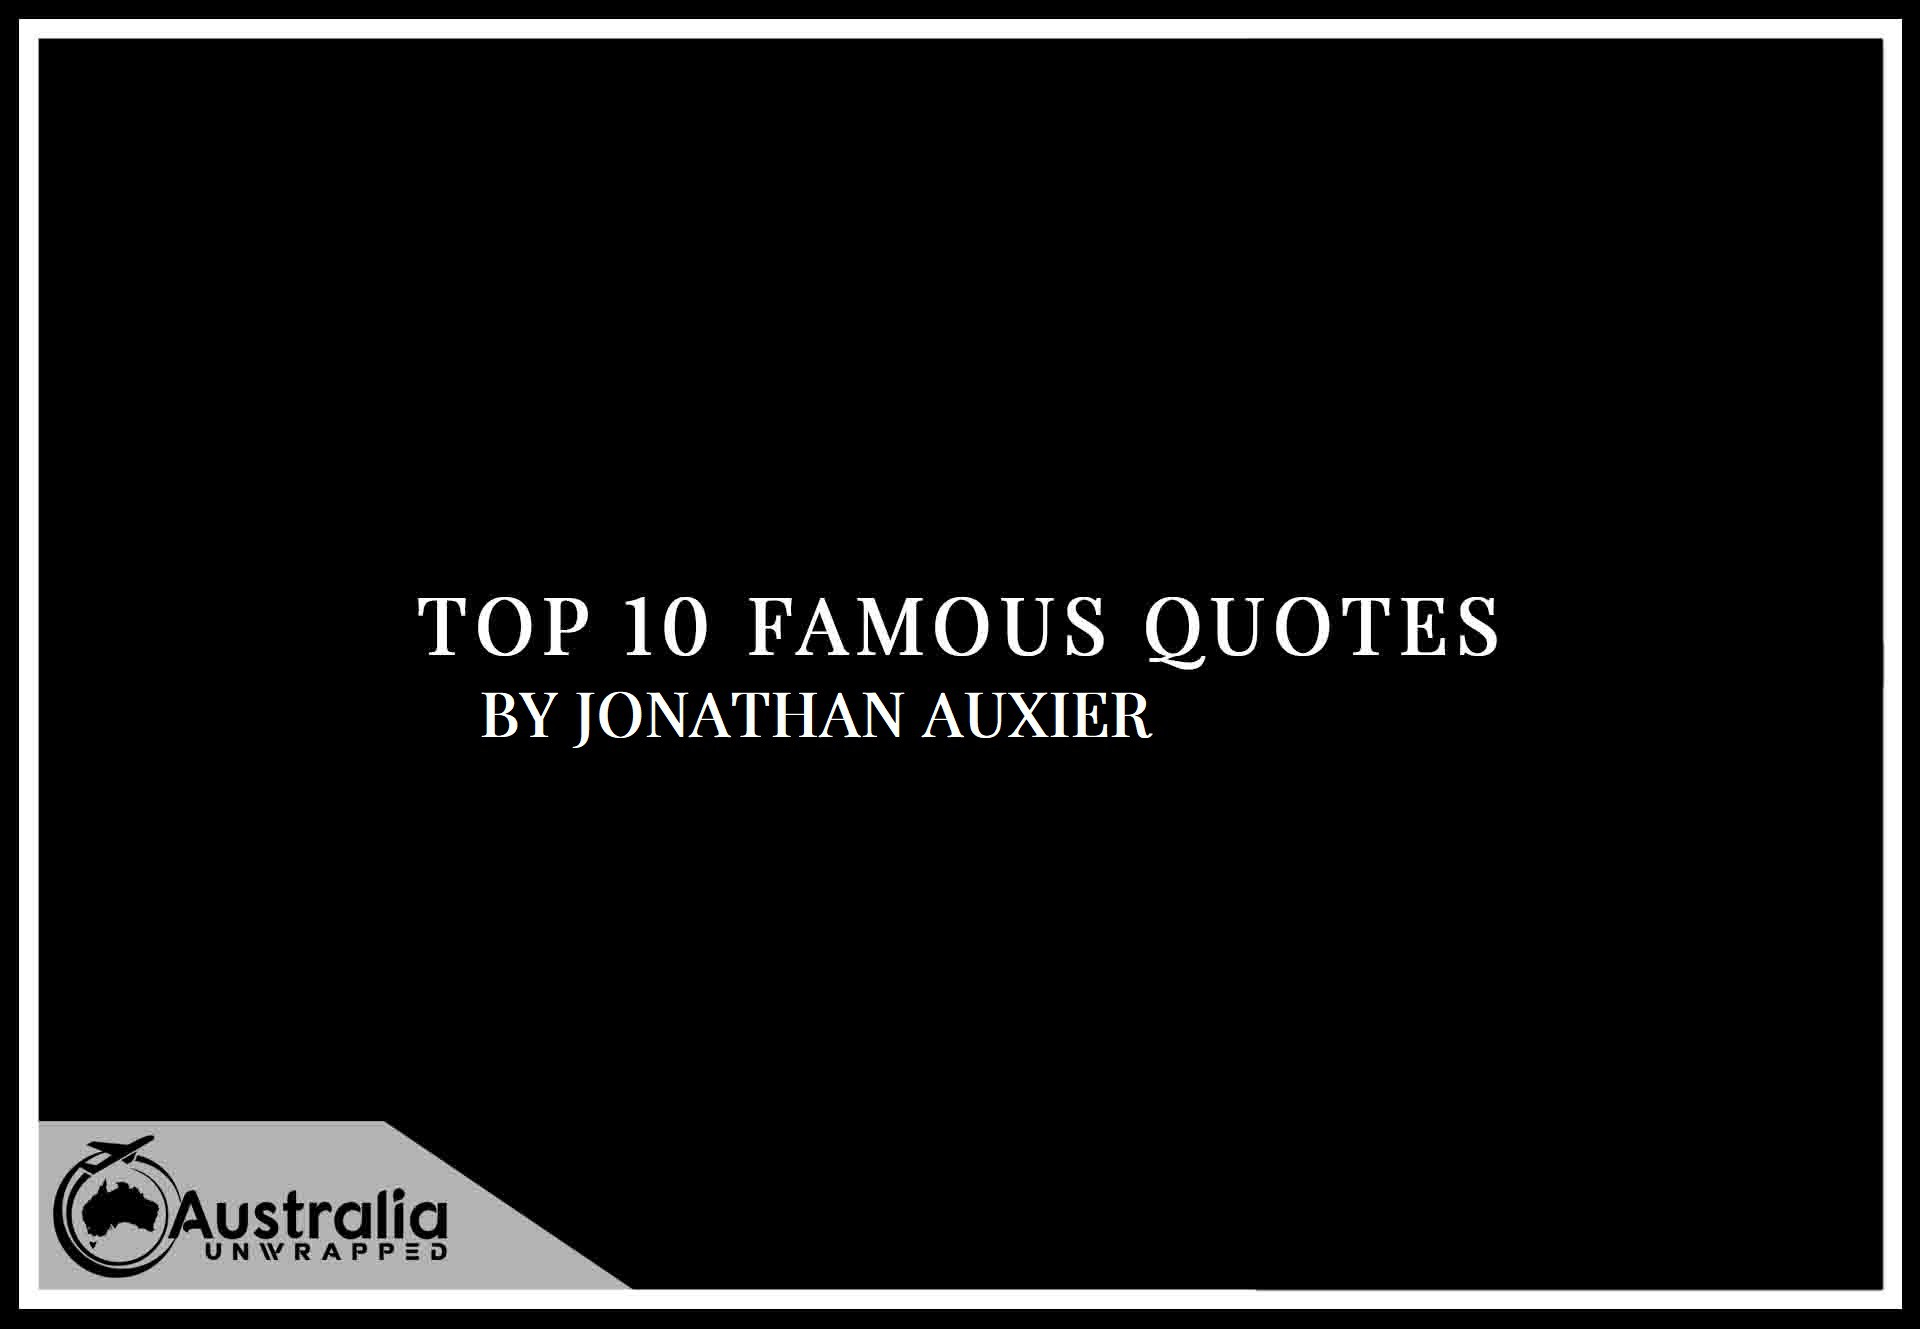 Top 10 Famous Quotes by Author Jonathan auxier